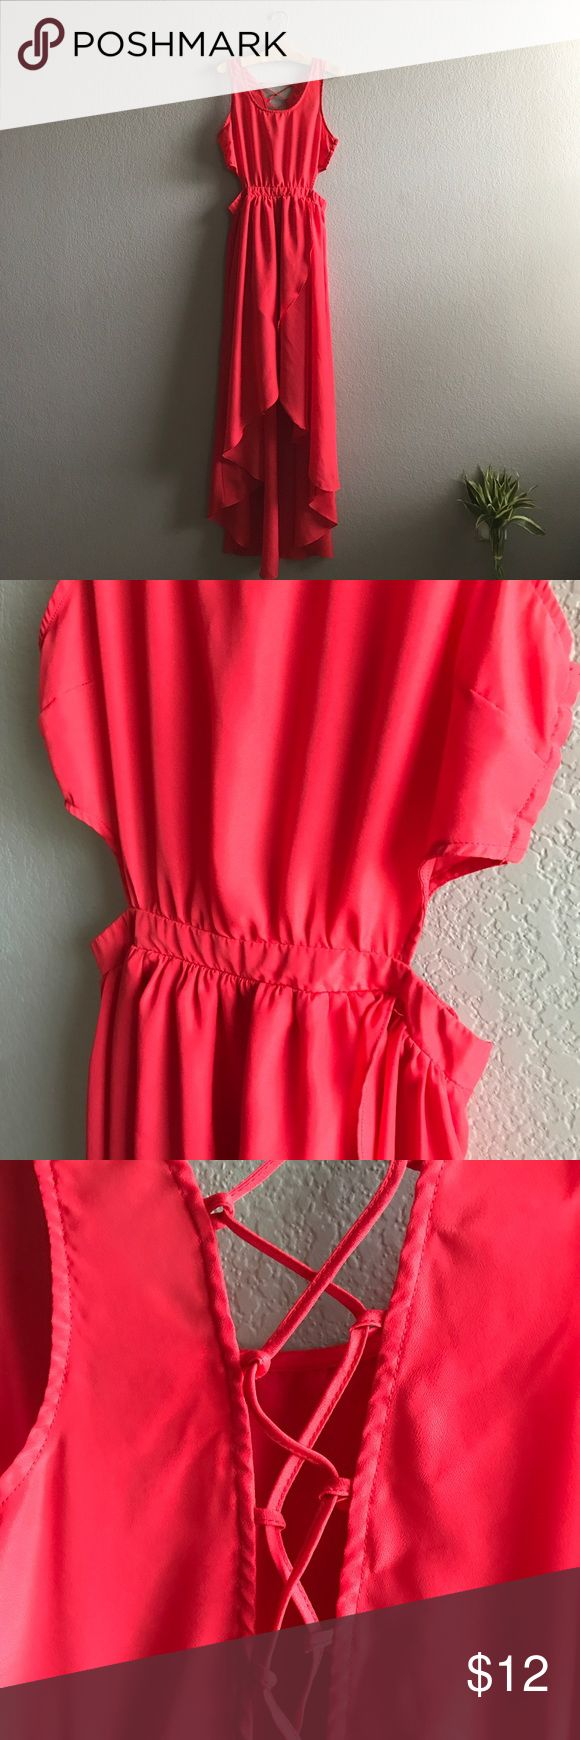 Lush Cutout Maxi Dress . S/M BEAUTIFUL maxi dress by Lush, cutout and tiers front, lined bottom portion and lace up back. Gorgeous, vibrant red almost coral color. Like new. So flattering on. Marked Medium but can fit Small Lush Dresses Maxi